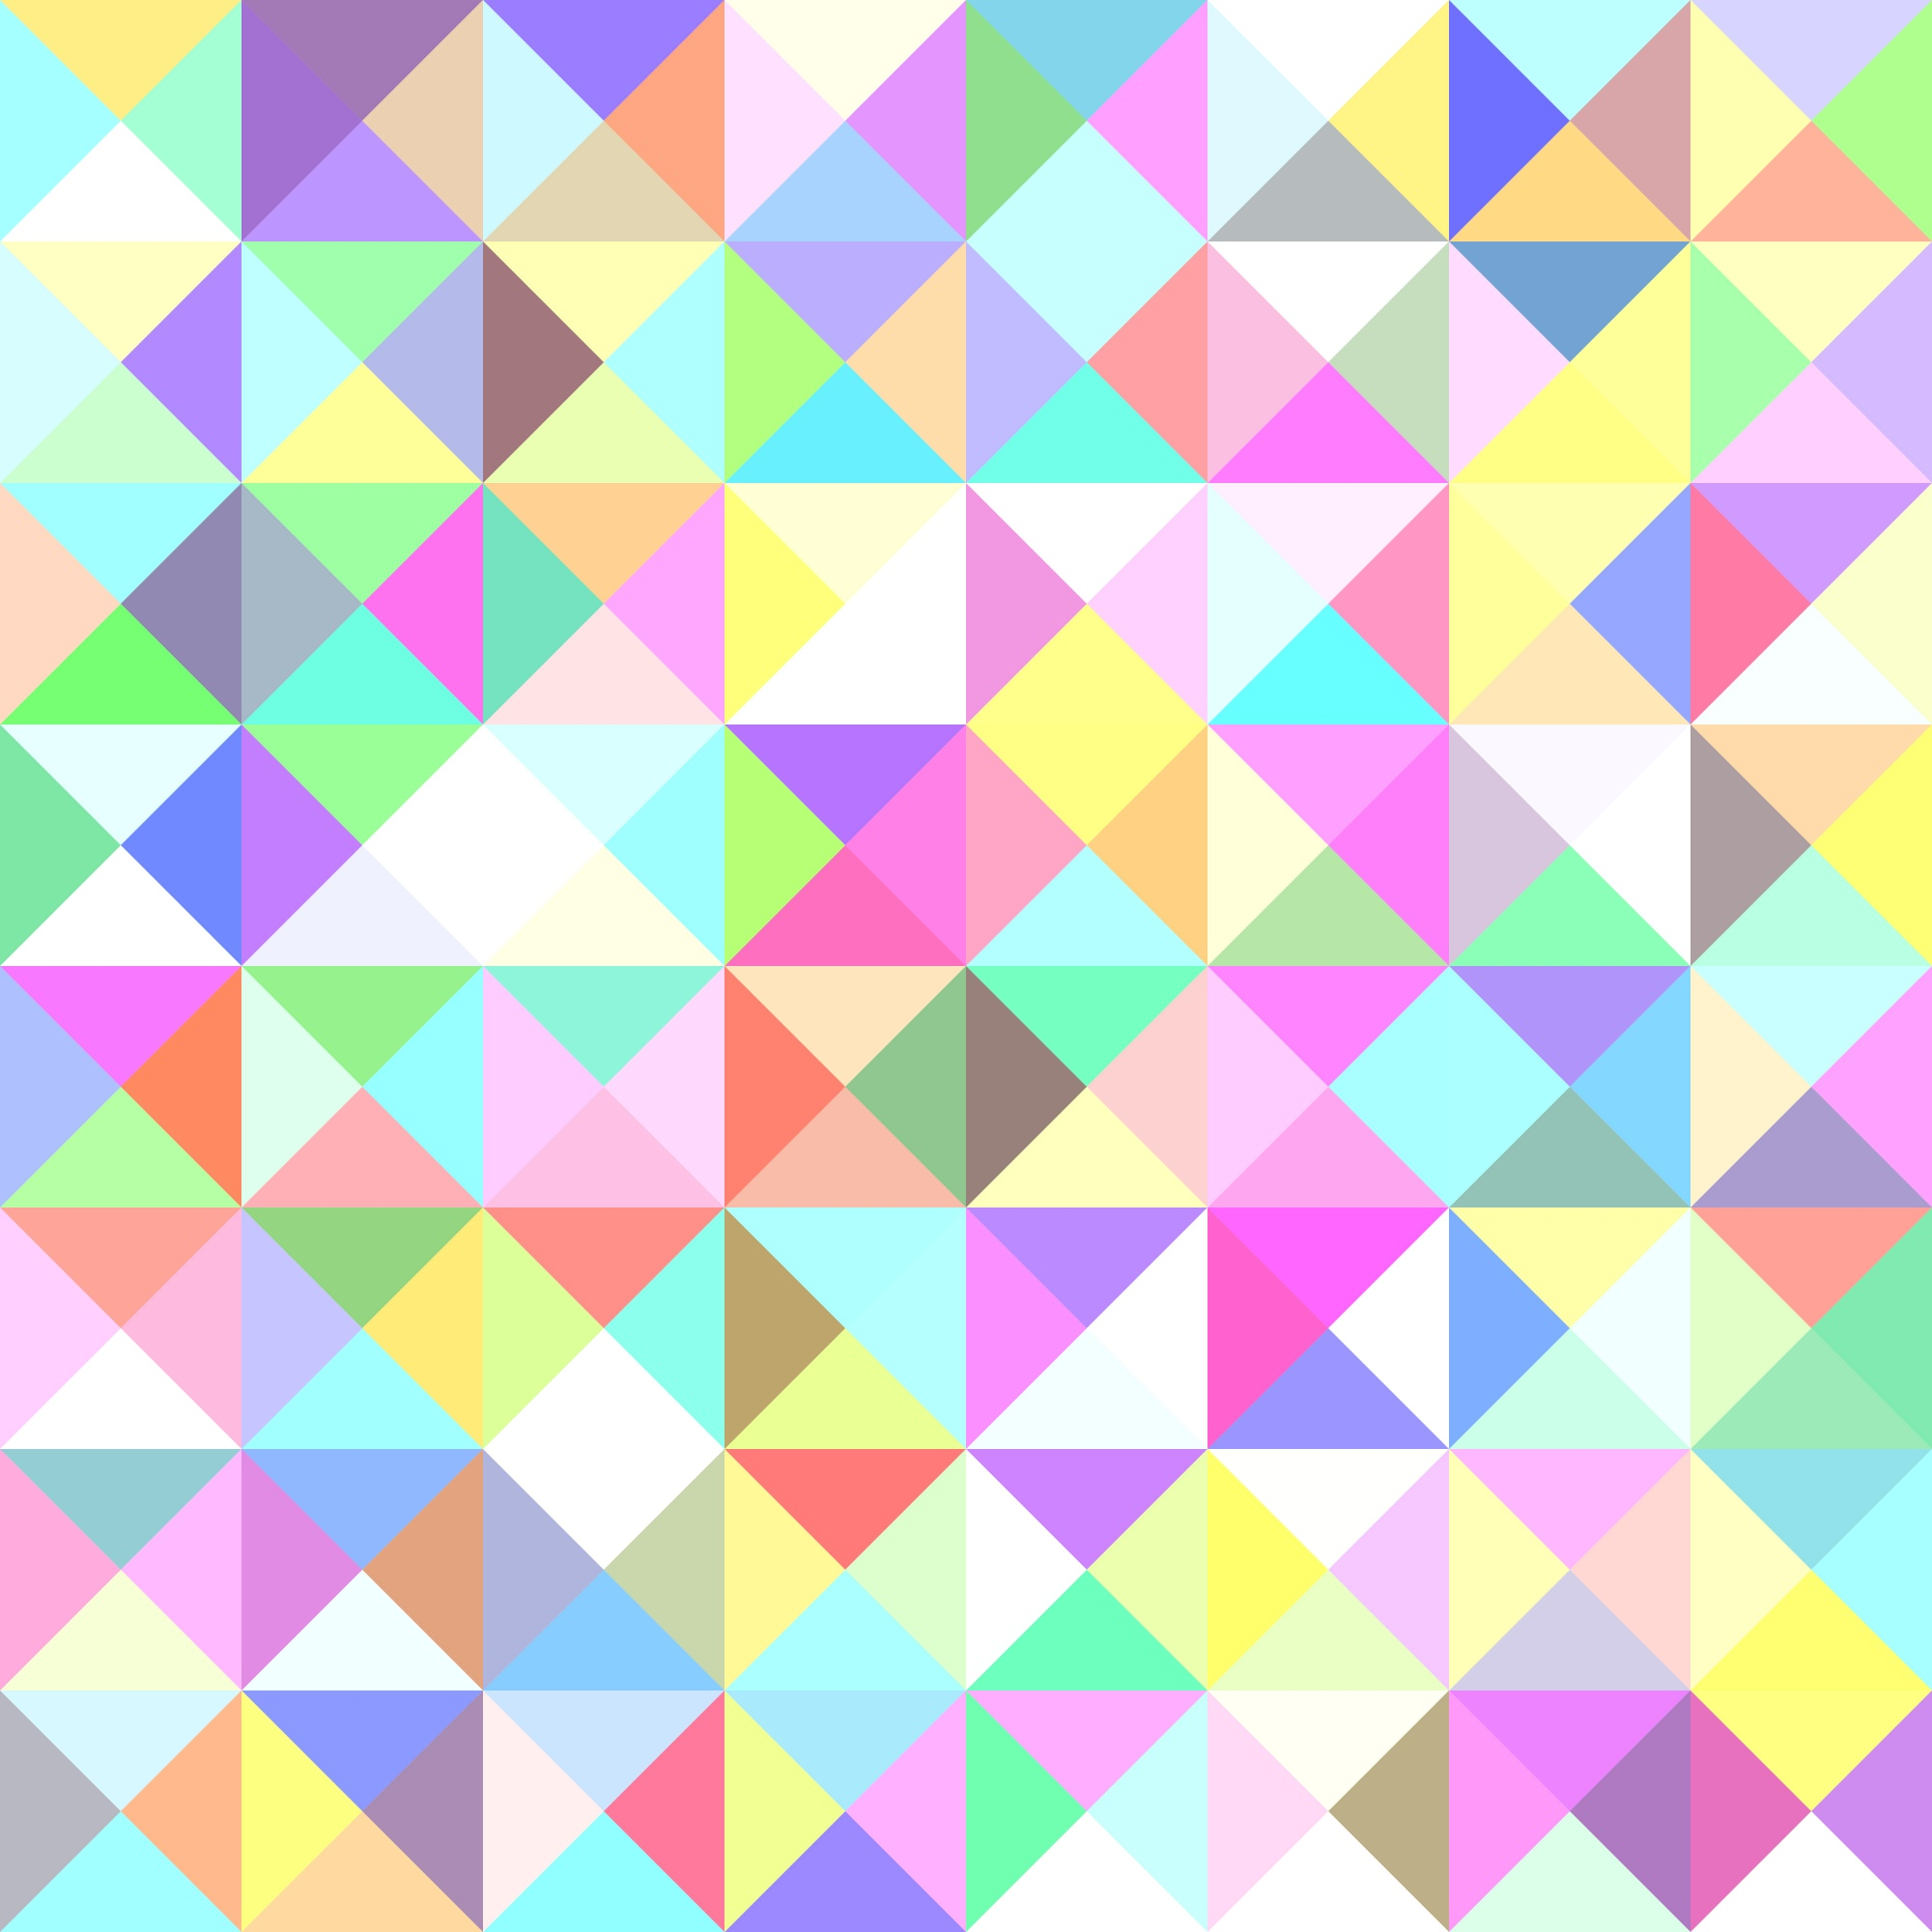 Pyramid pattern background - mosaic vector illustration from triangles